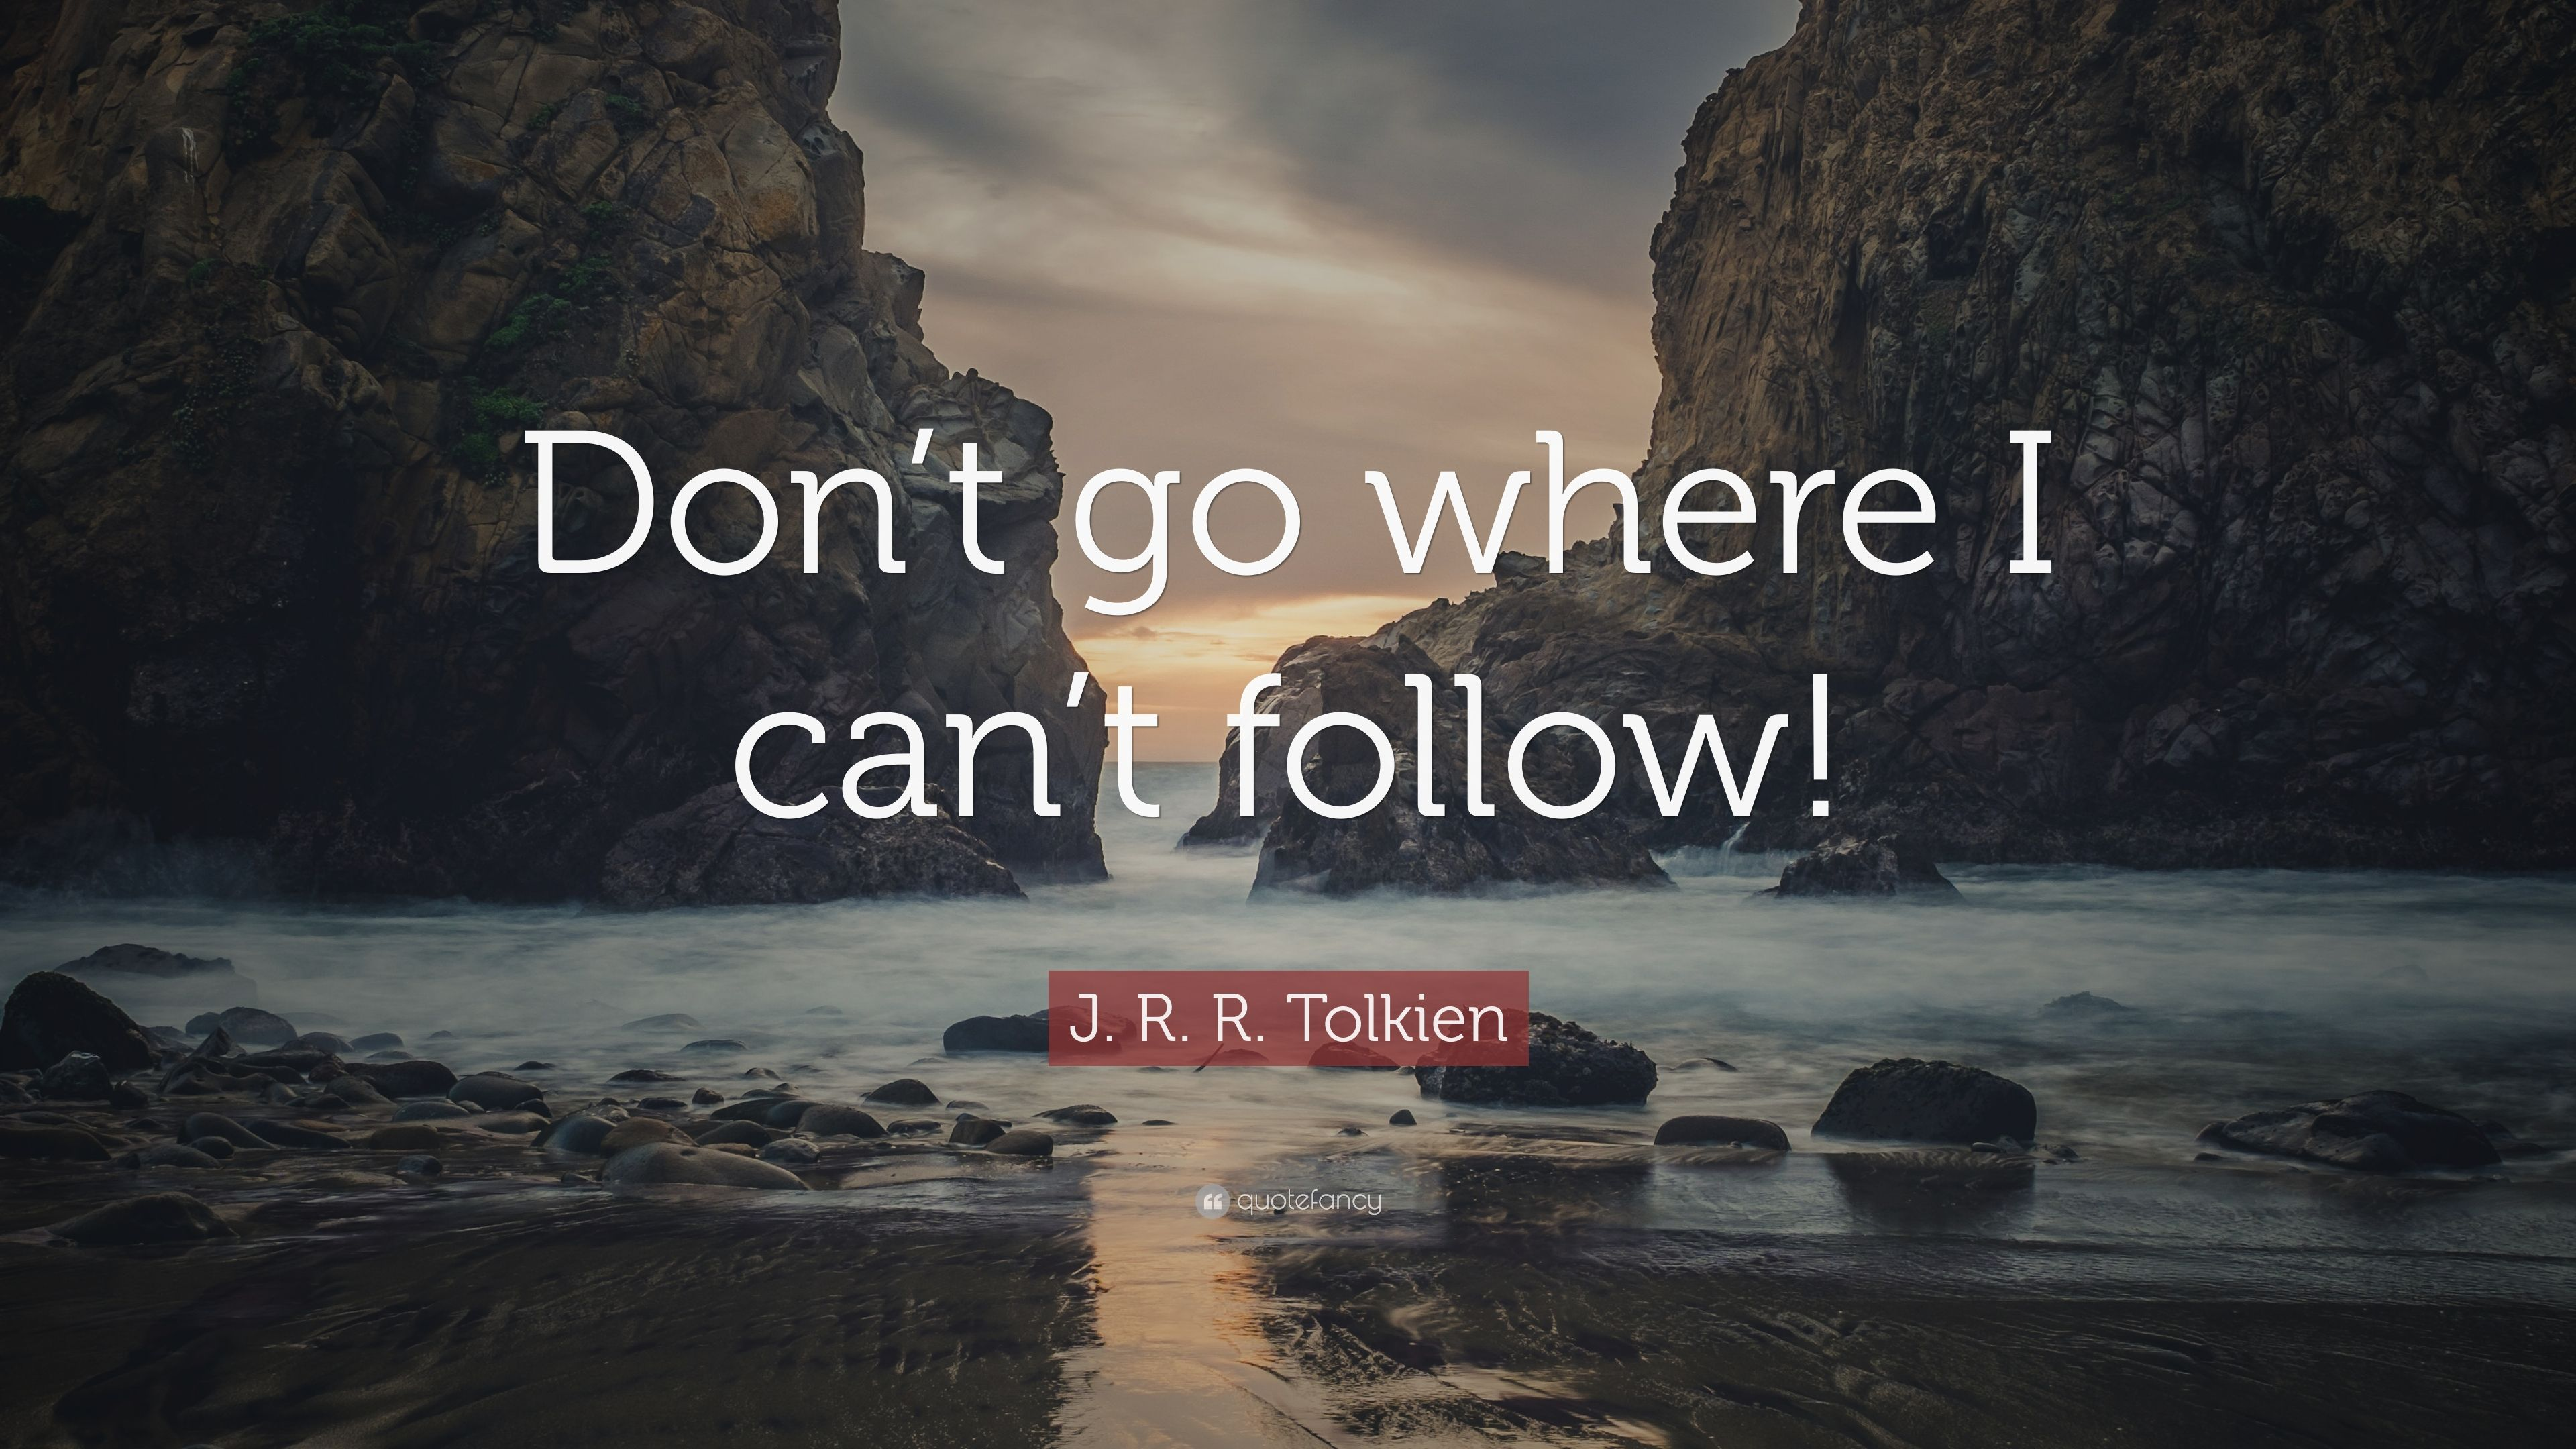 J R R Tolkien Quote Dont Go Where I Cant Follow 9